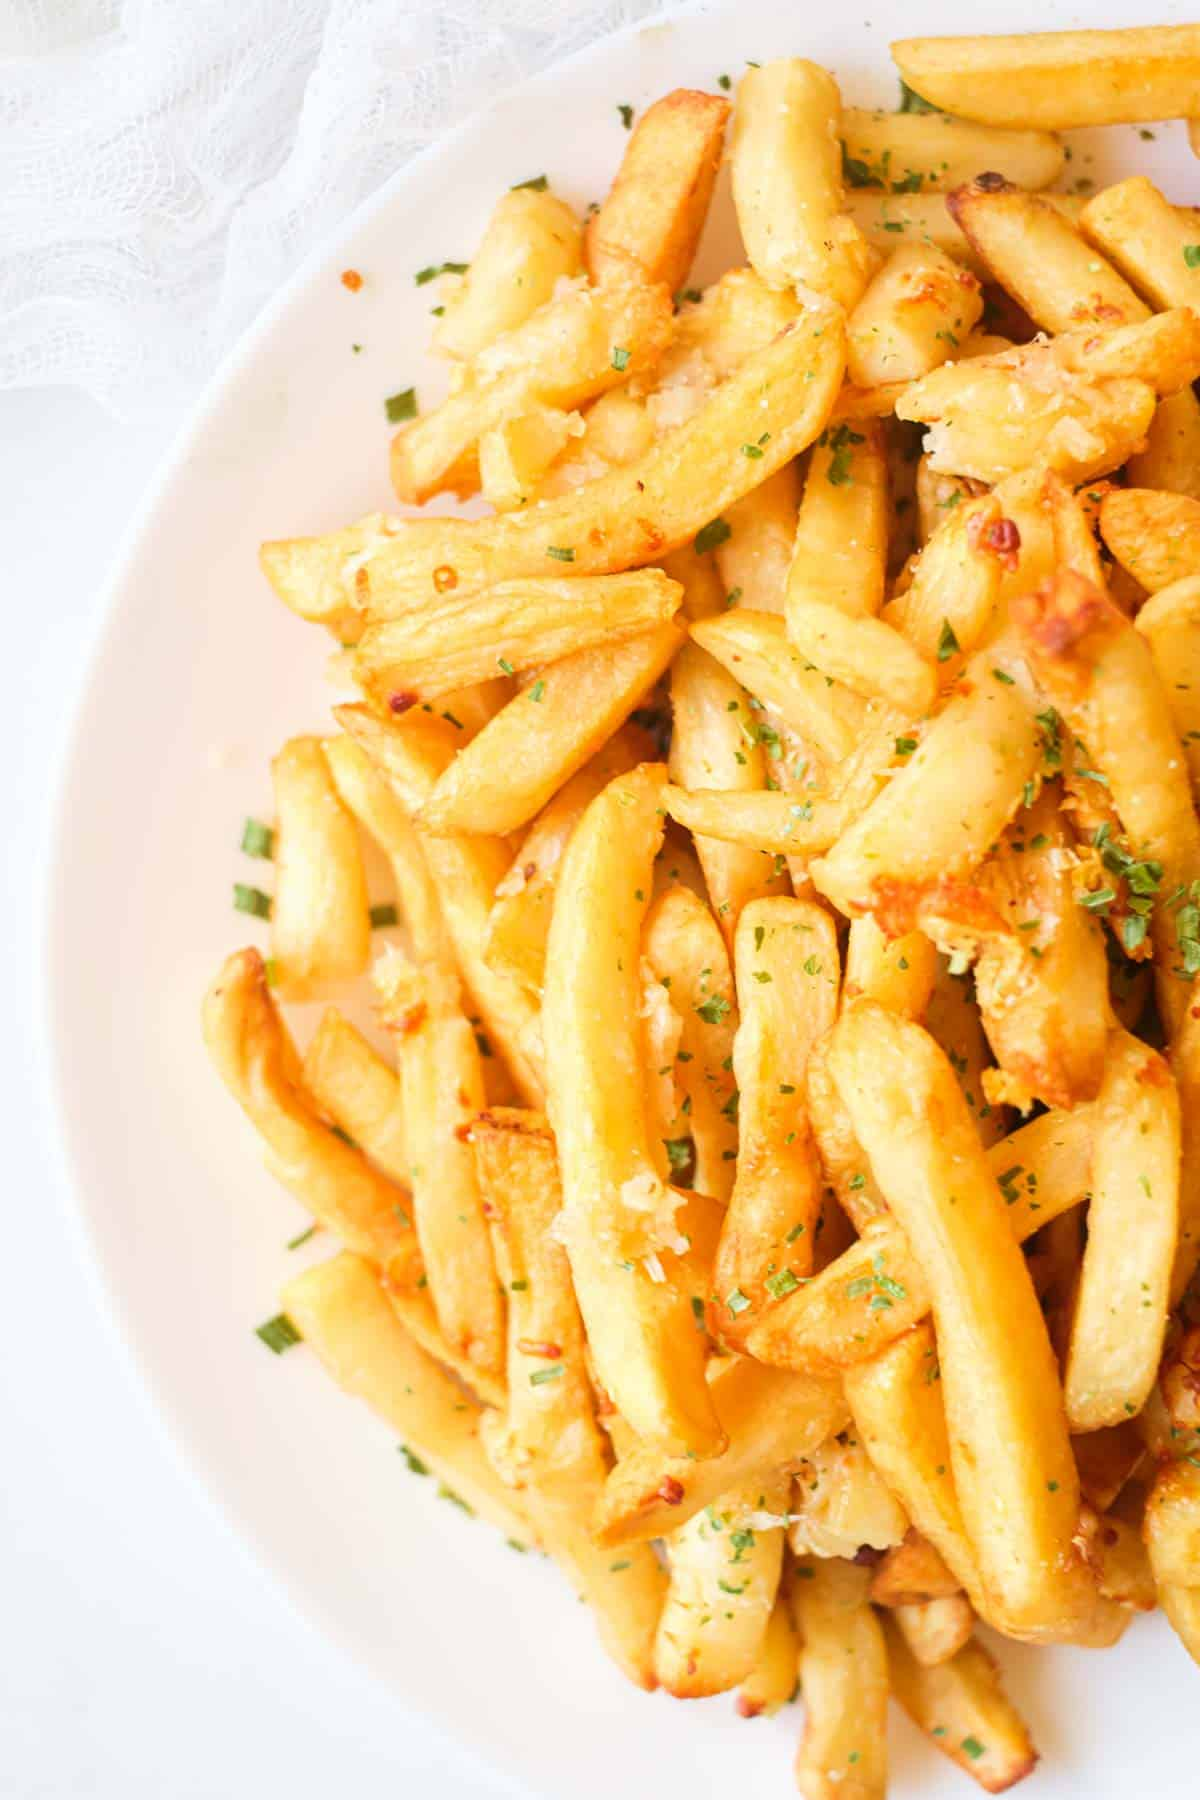 close up view of the finished garlic parmesan fries